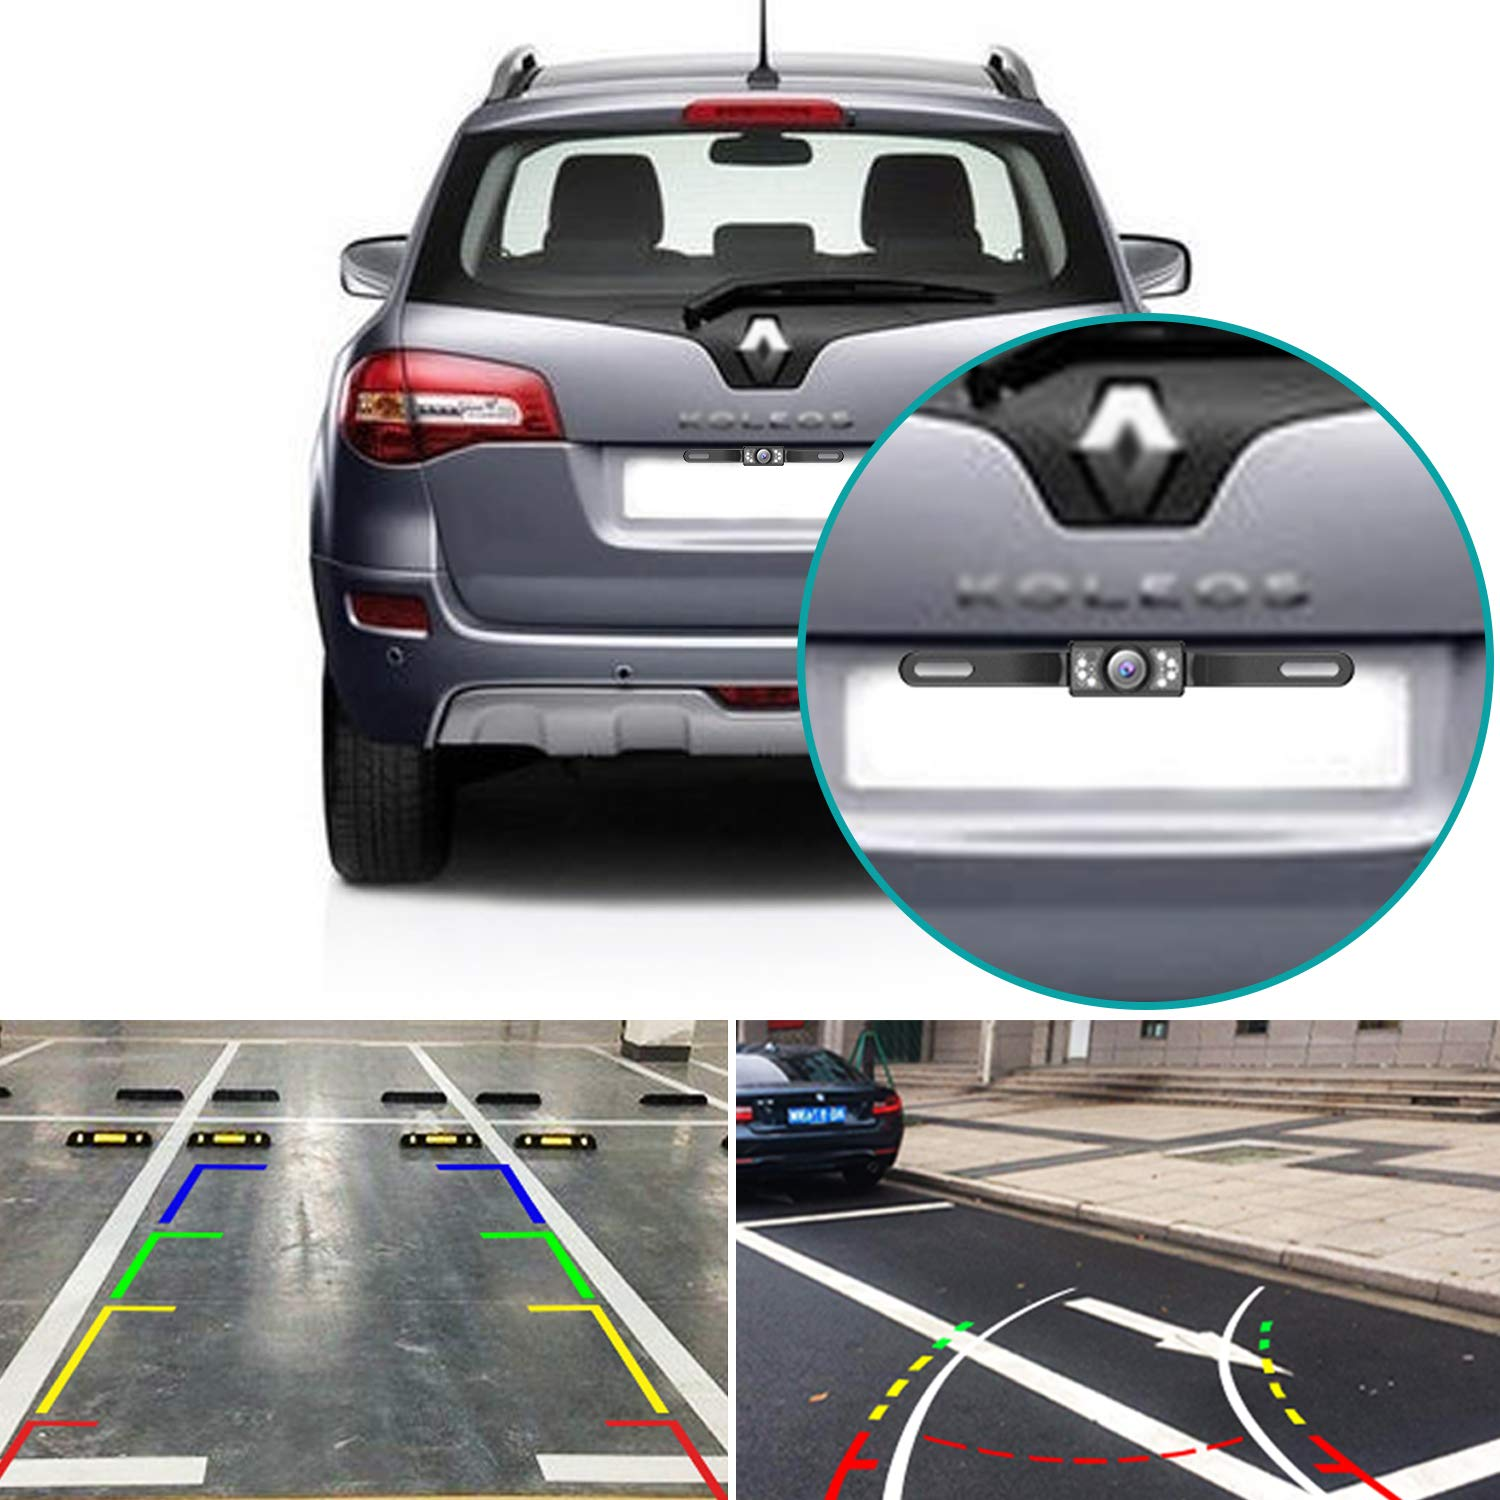 Car Rear View Reversing Backup Camera REOTECH Automotive with 110°Perfect View Angle 7 LED Lights Night Vision Waterproof Universal Car Backing Camera License Plate